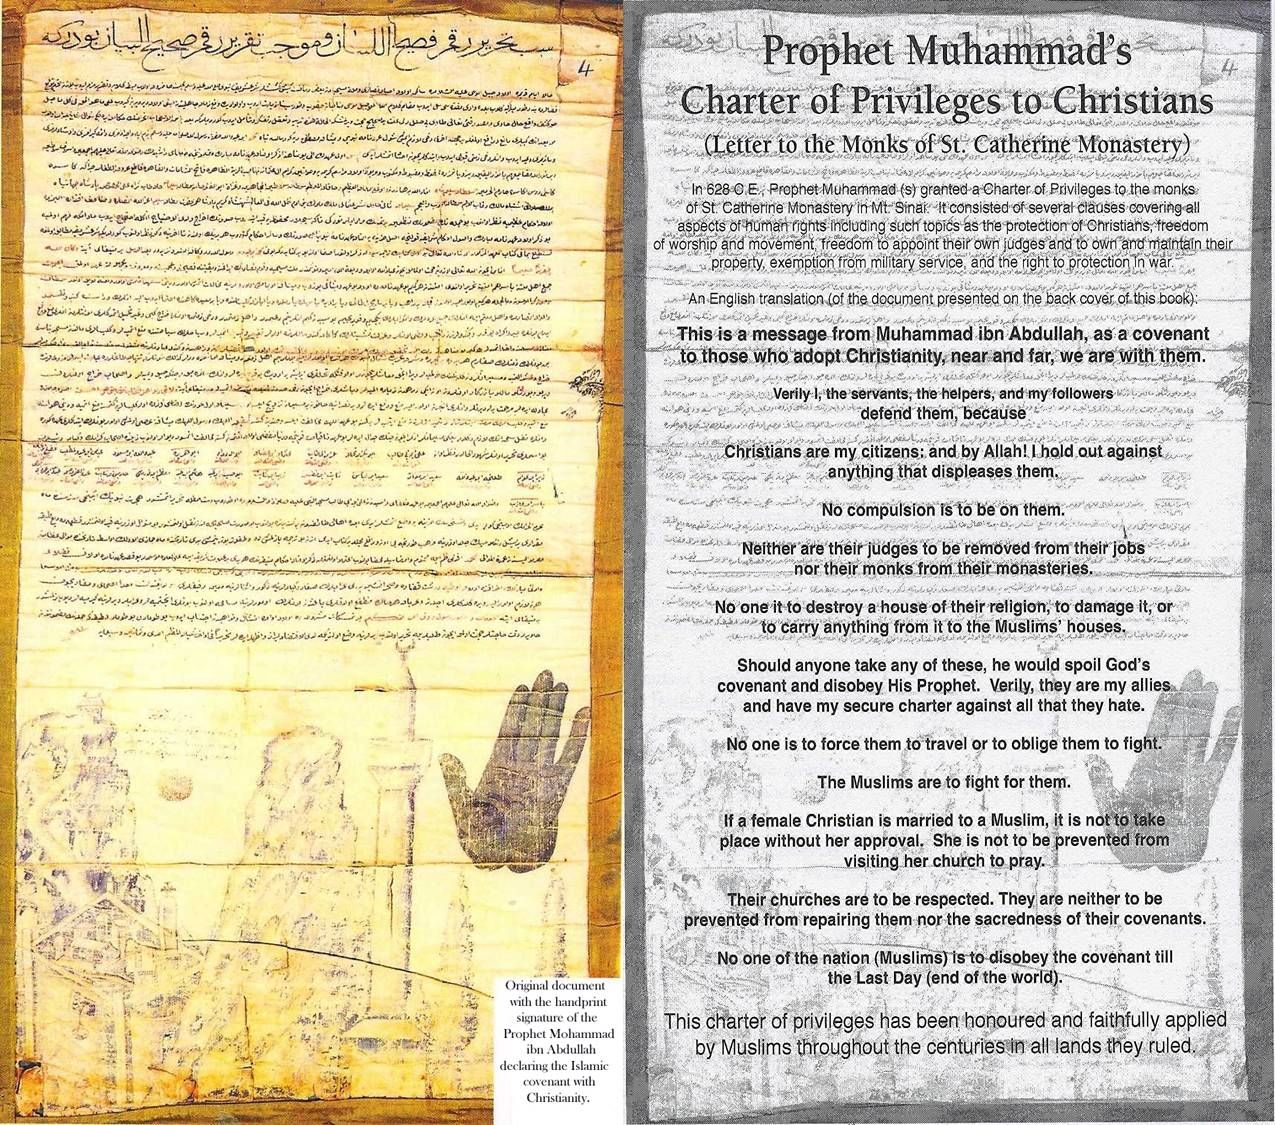 The-covenant-of-the-Prophet-Muhammad-with-the-monks-of-Mount-Sinai.jpg (1275×1125)